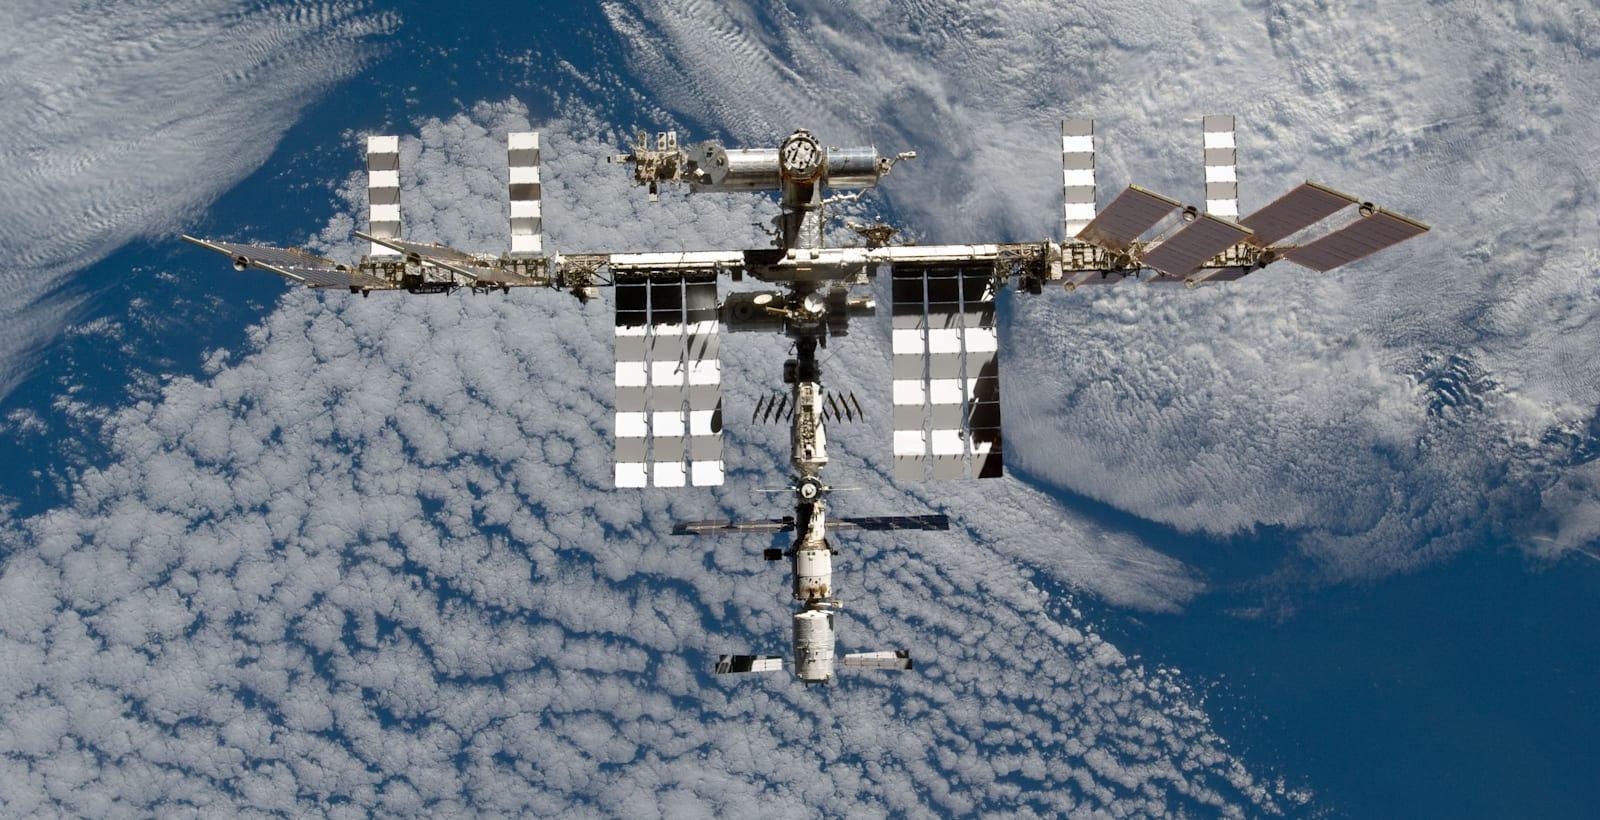 Space Station Over Earth (NASA, International Space Station, 03/07/11)